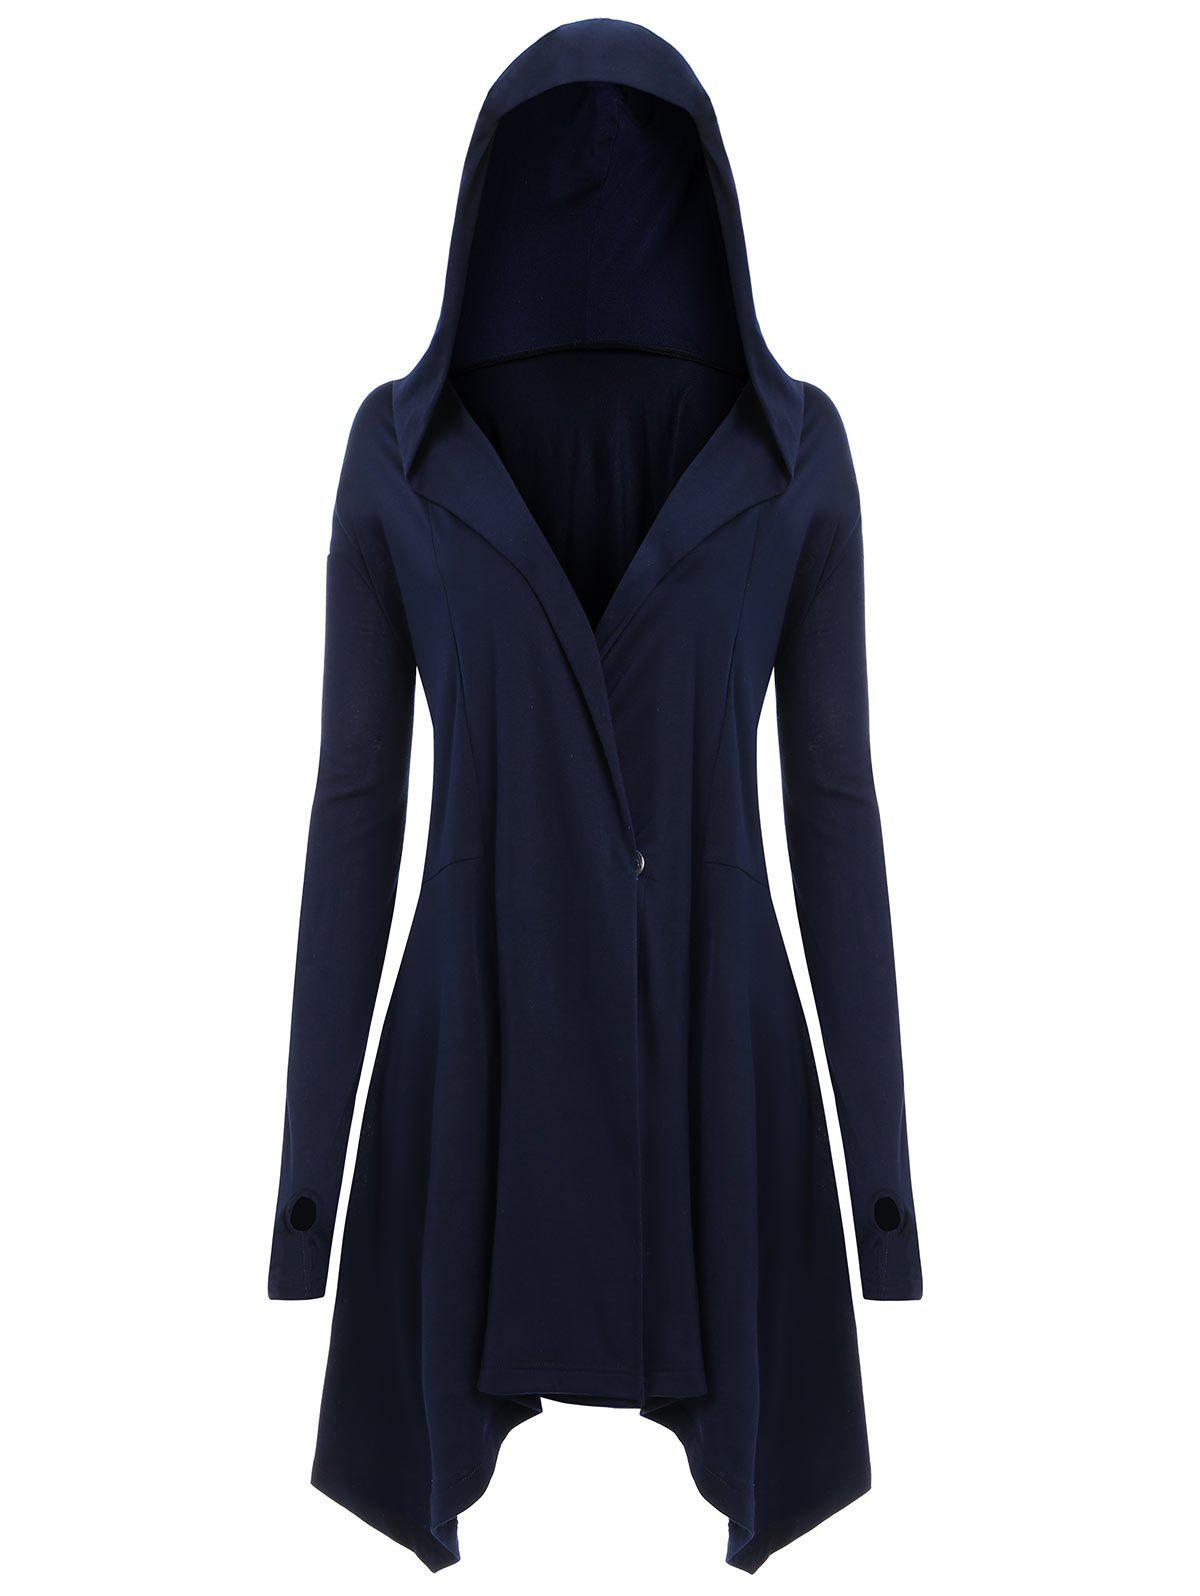 Asymmetric Plus Size Back Lace Up HoodieWOMEN<br><br>Size: 3XL; Color: BLUE; Material: Polyester,Spandex; Shirt Length: Long; Sleeve Length: Full; Style: Fashion; Pattern Style: Solid; Season: Fall,Spring; Weight: 0.5700kg; Package Contents: 1 x Hoodie;